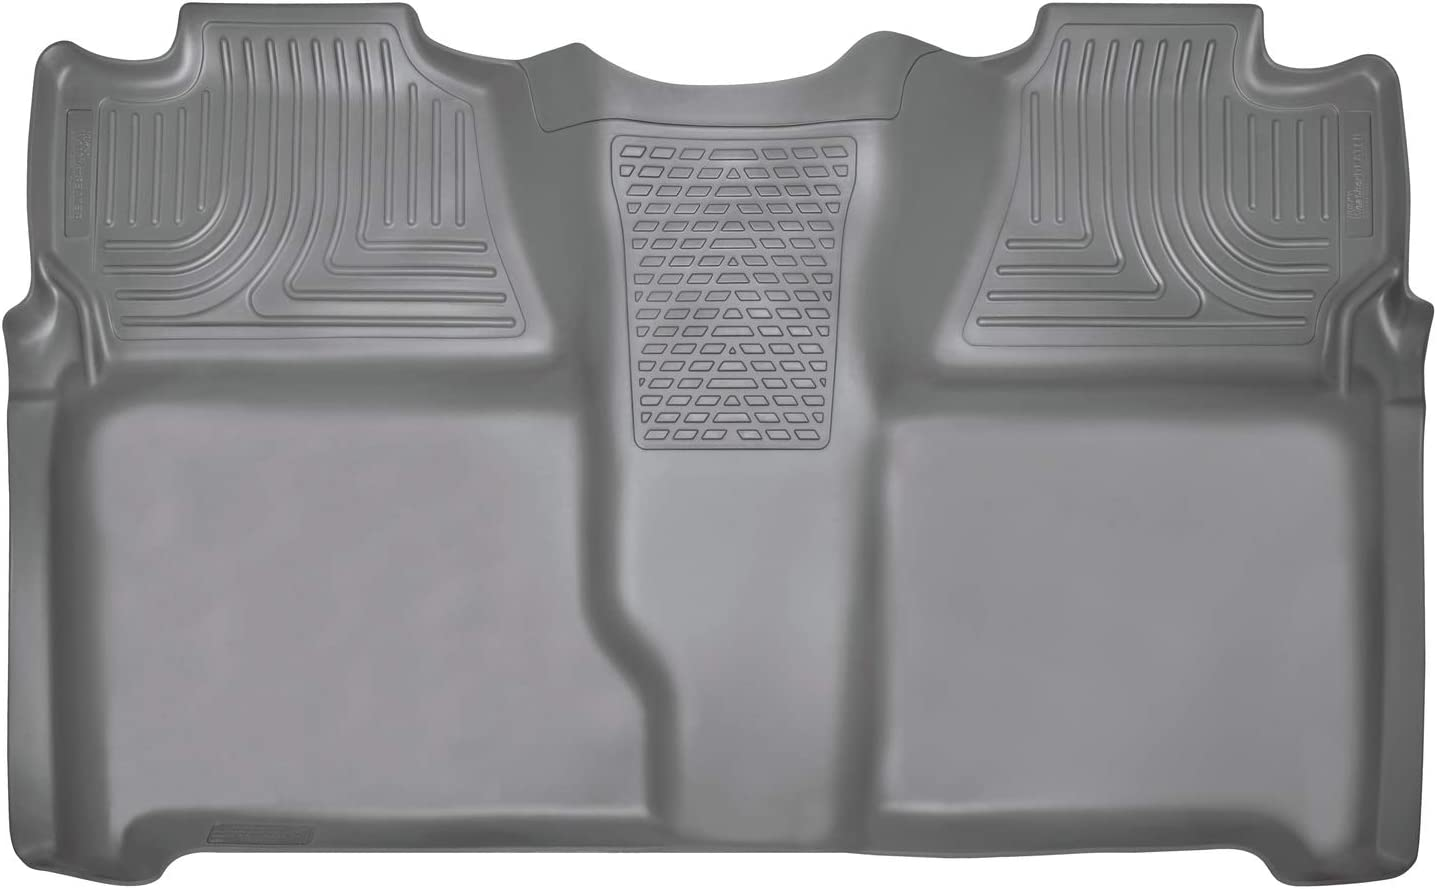 2007-13 Sierra Ext Cab Mud Flaps 4pc Guards Front Rear w Door Scuff Protectors